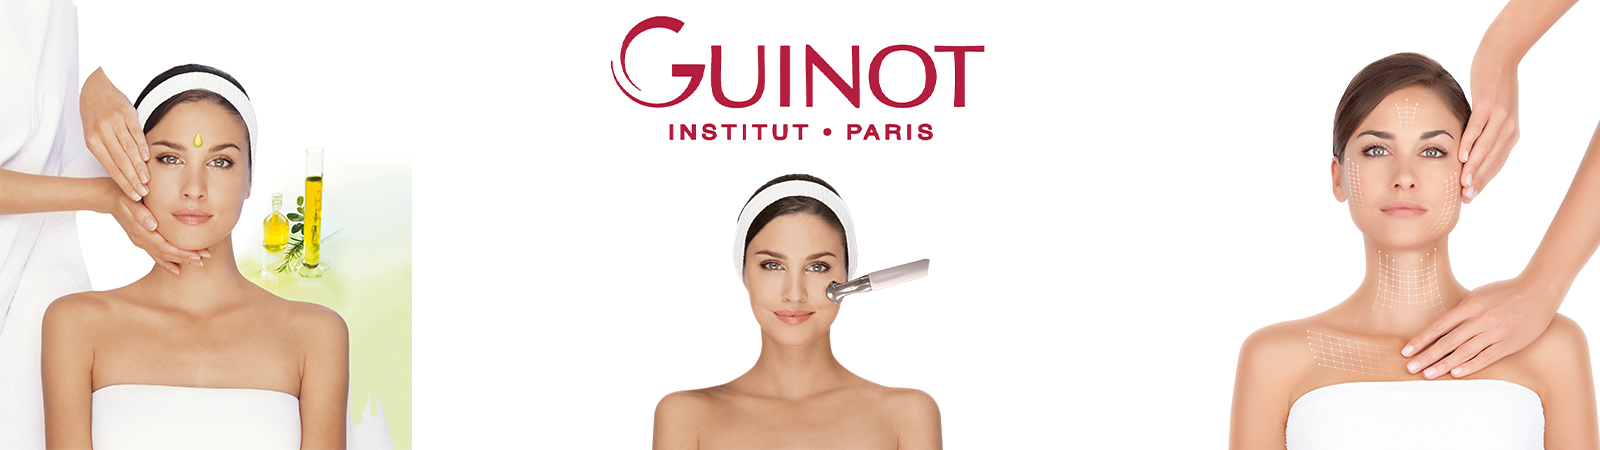 Guinot Facial Treatments In Chiswick, London, Chiswick Beautique